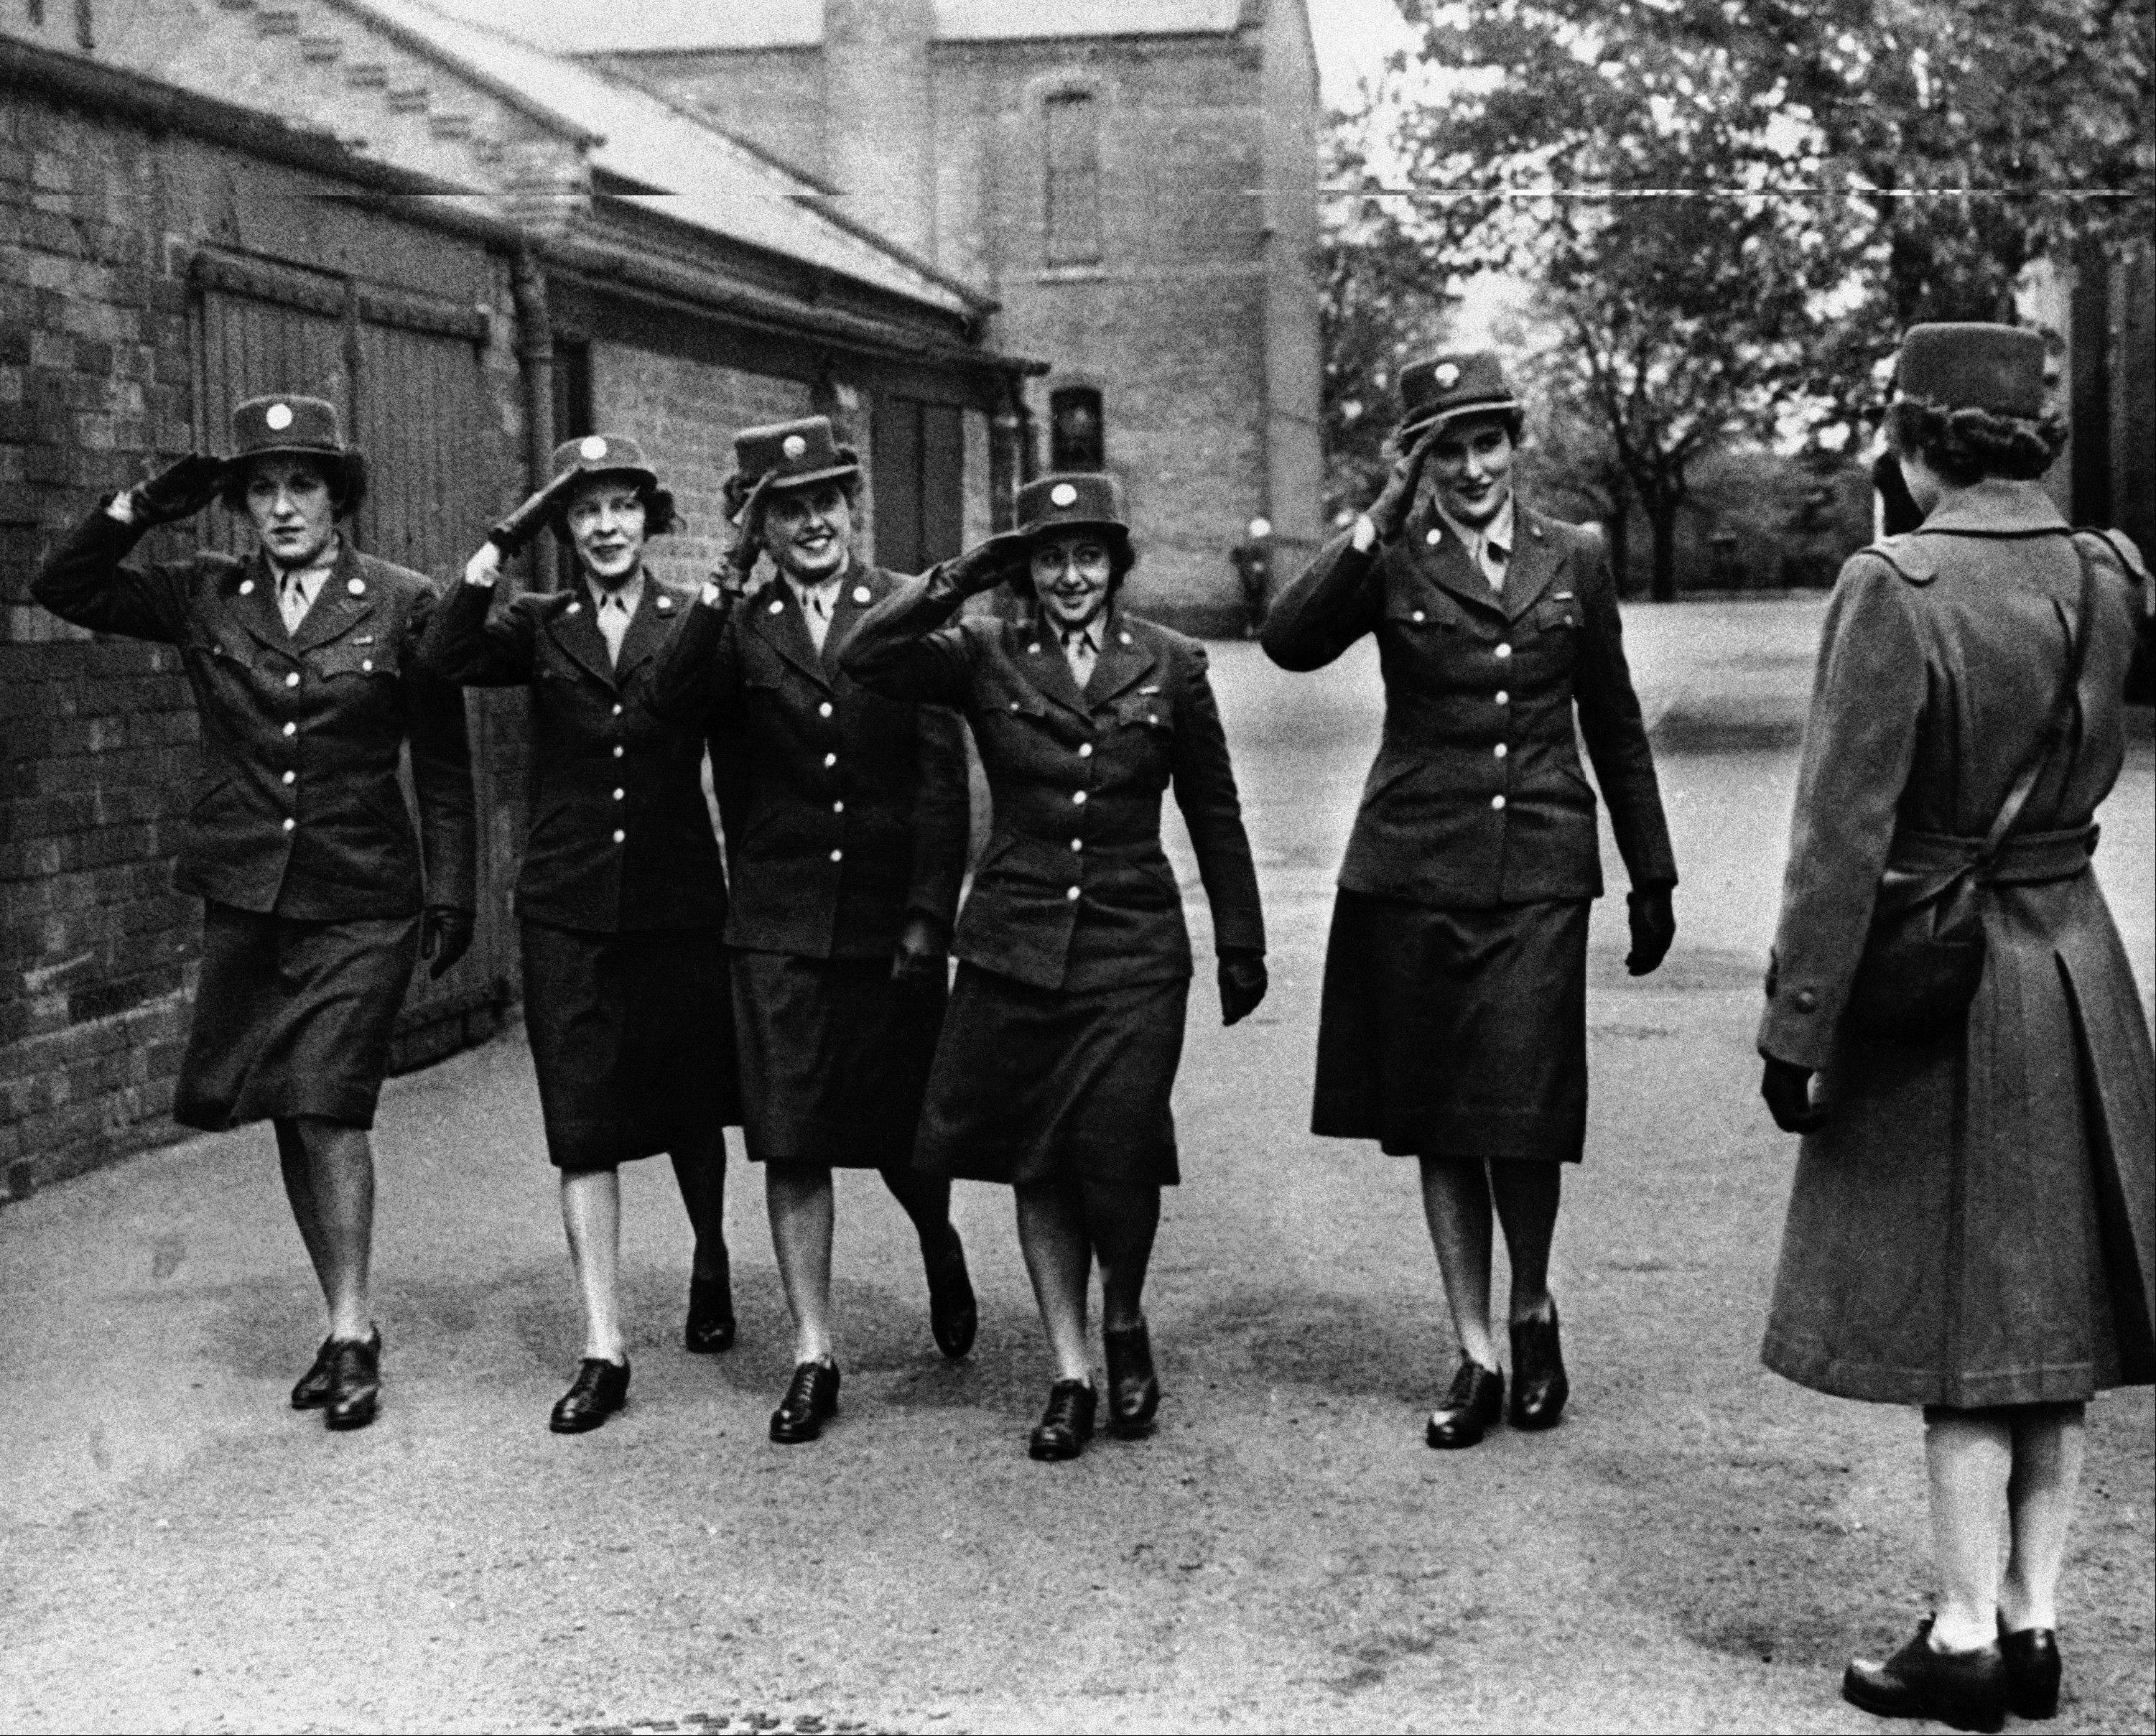 May 5, 1944: Five members of the Women's Army Corps serving with the army service of supplies, salute an officer at a base in England.